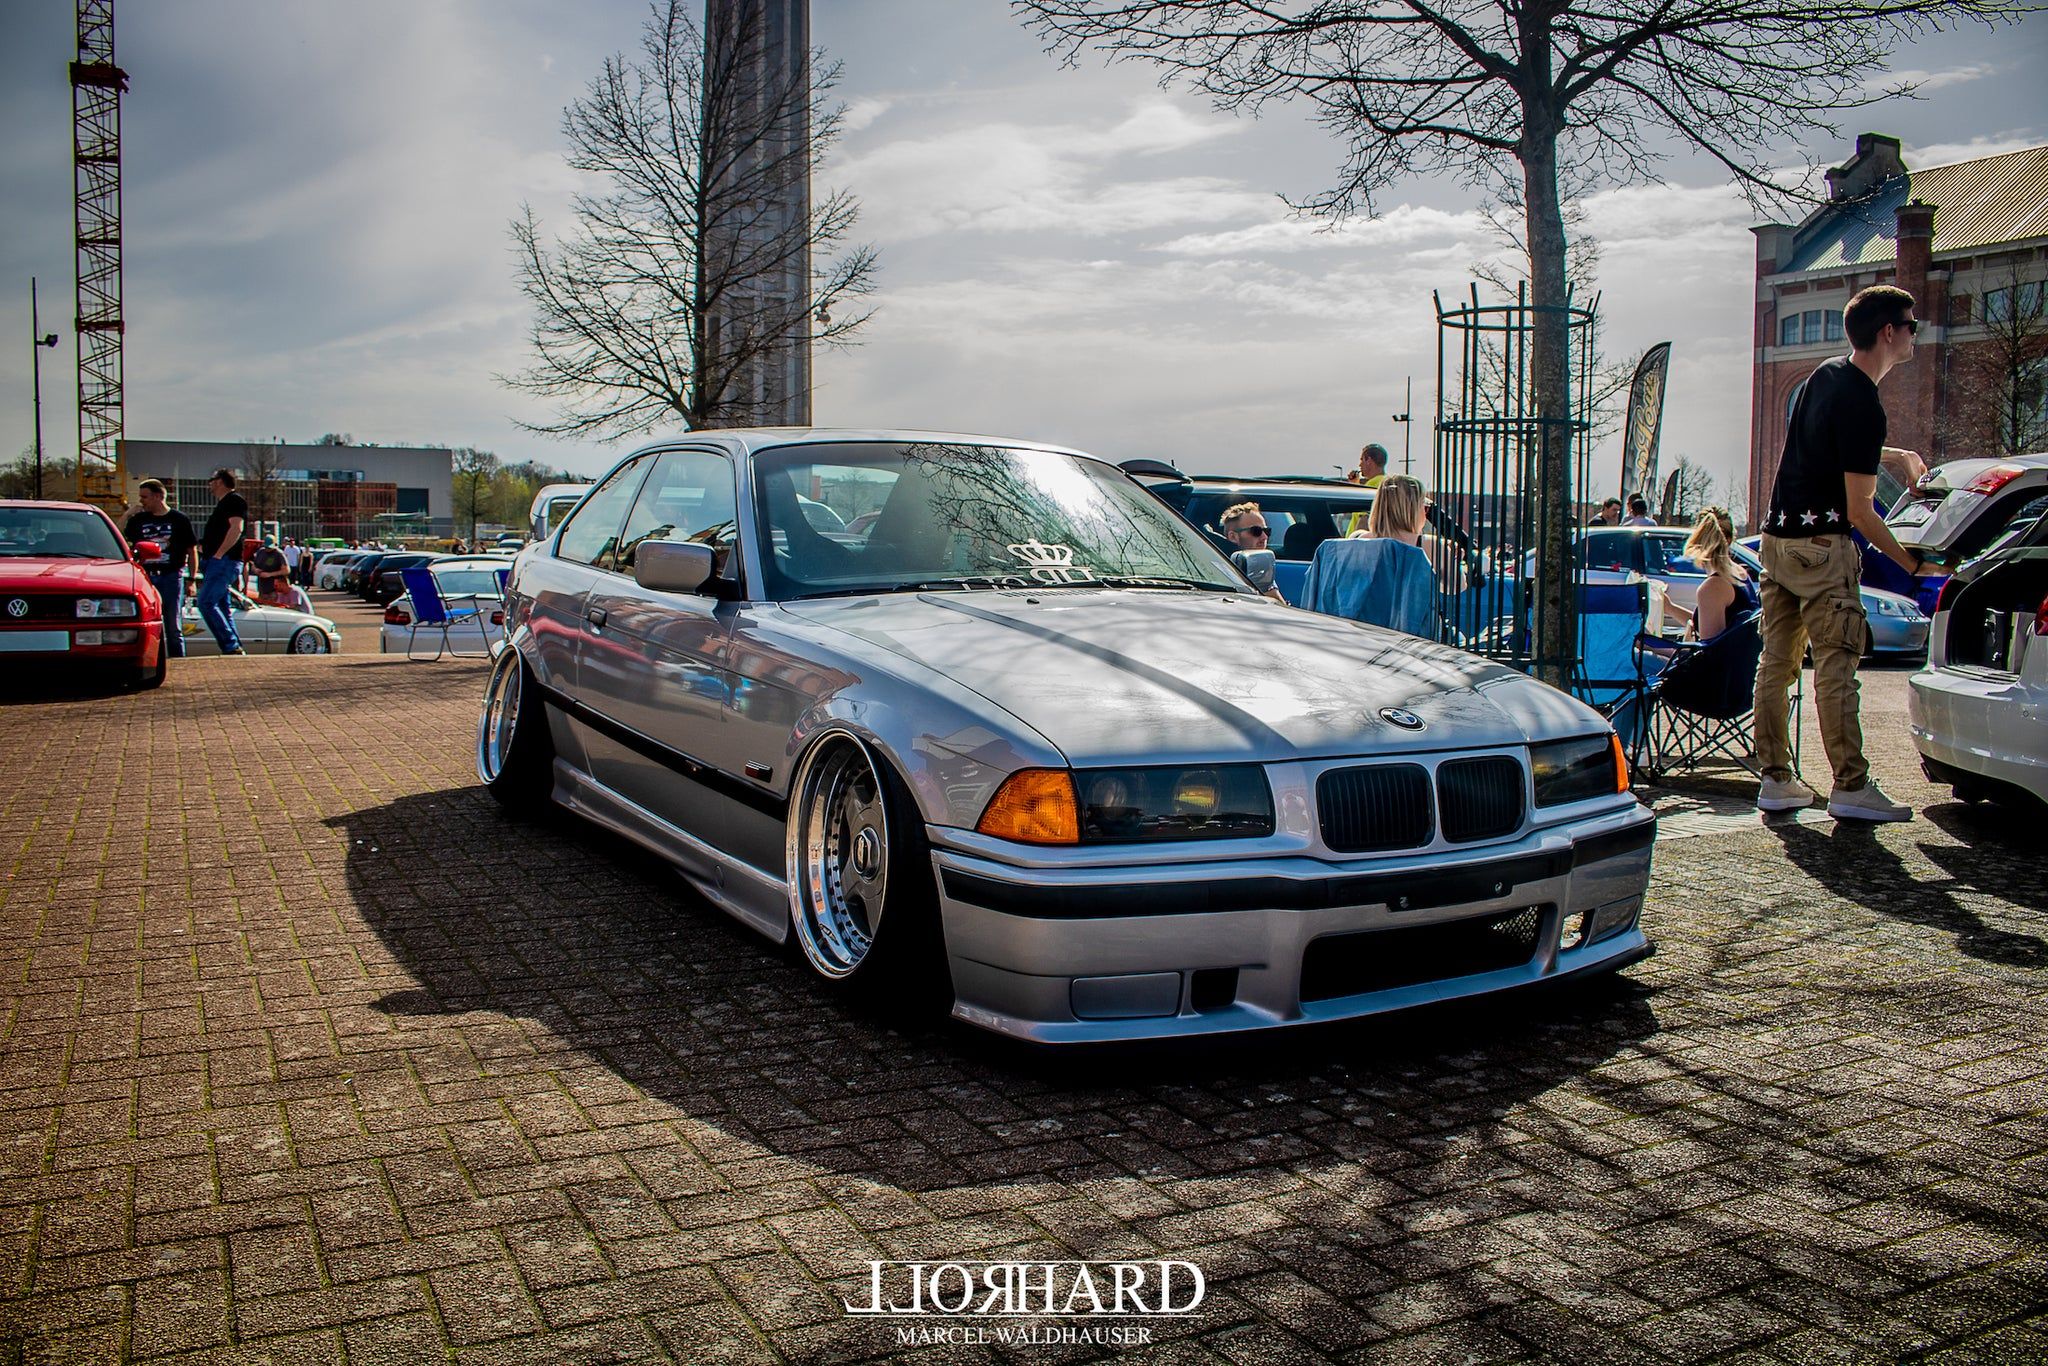 Support Your Local Car Meet RollHard - Car meet